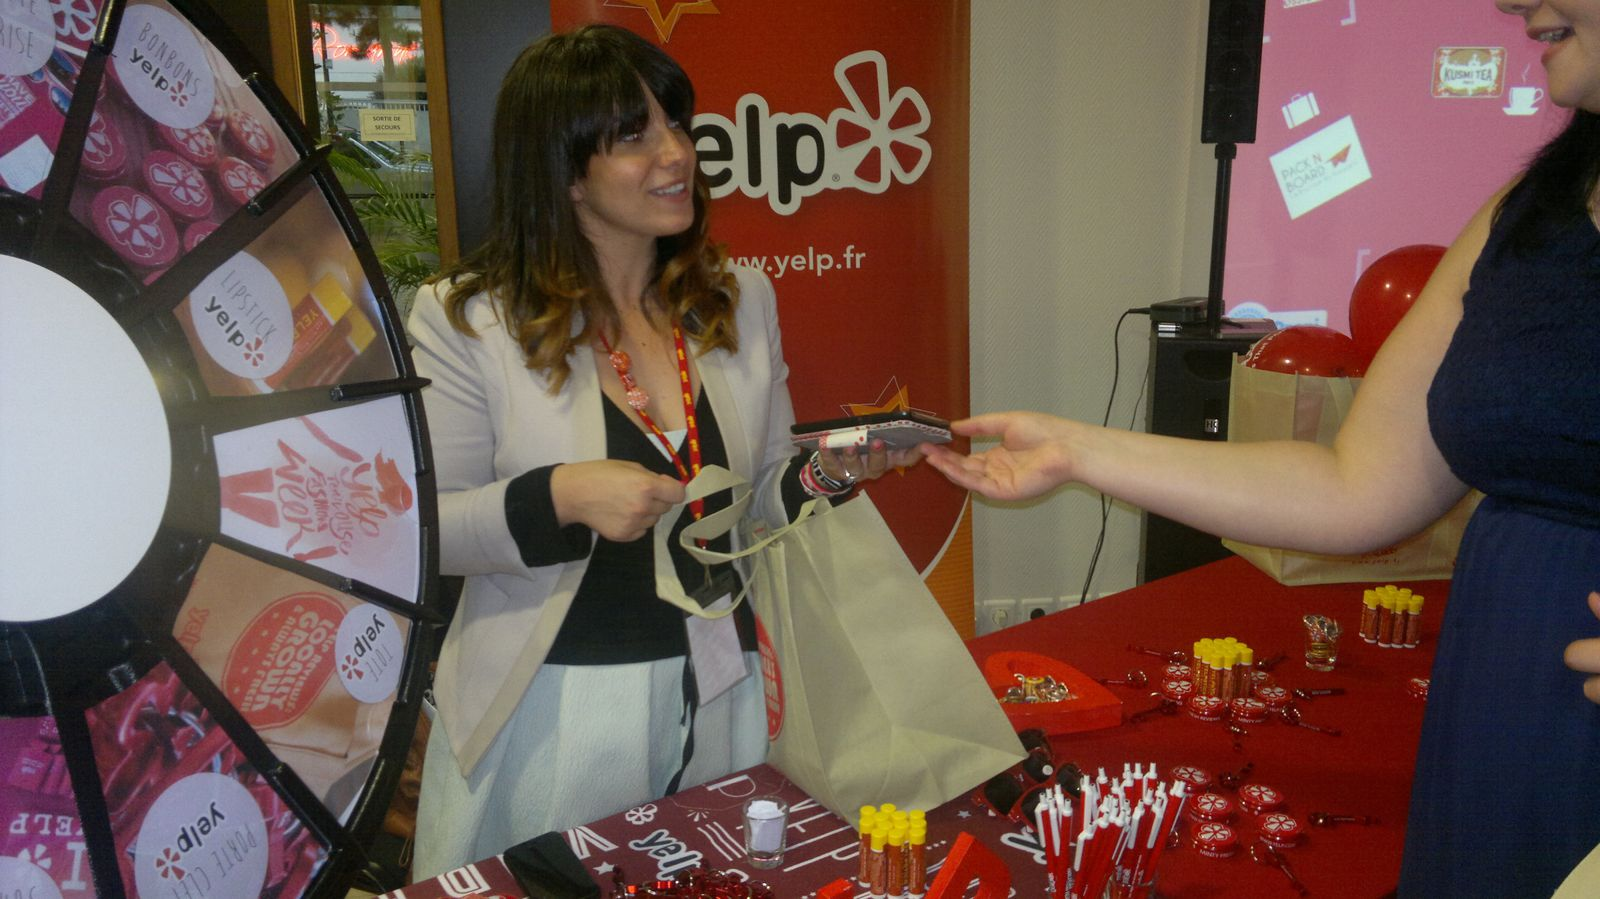 Stand de Yelp